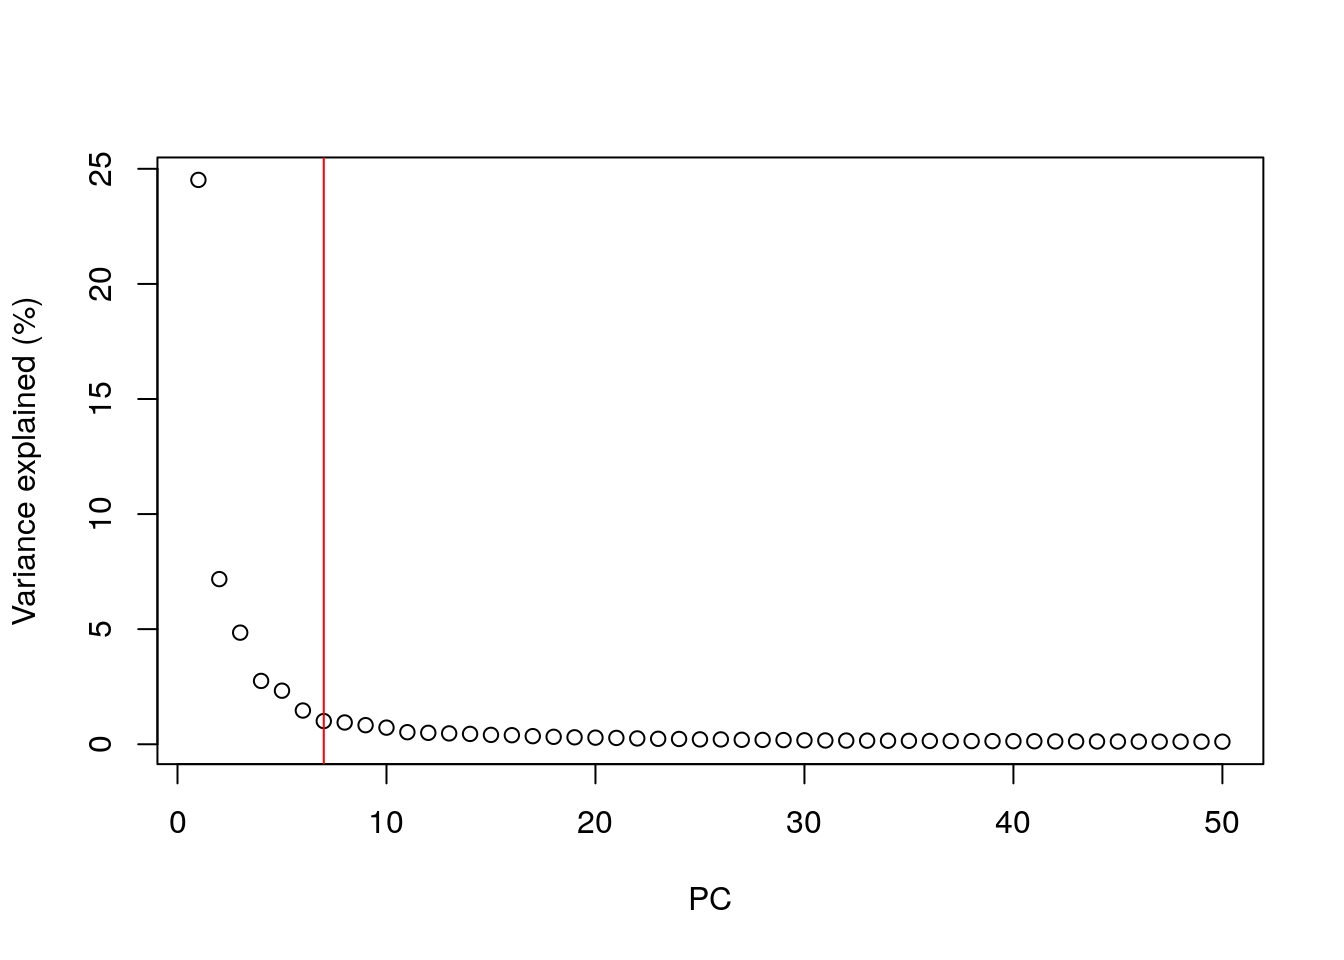 Percentage of variance explained by successive PCs in the Zeisel brain data. The identified elbow point is marked with a red line.